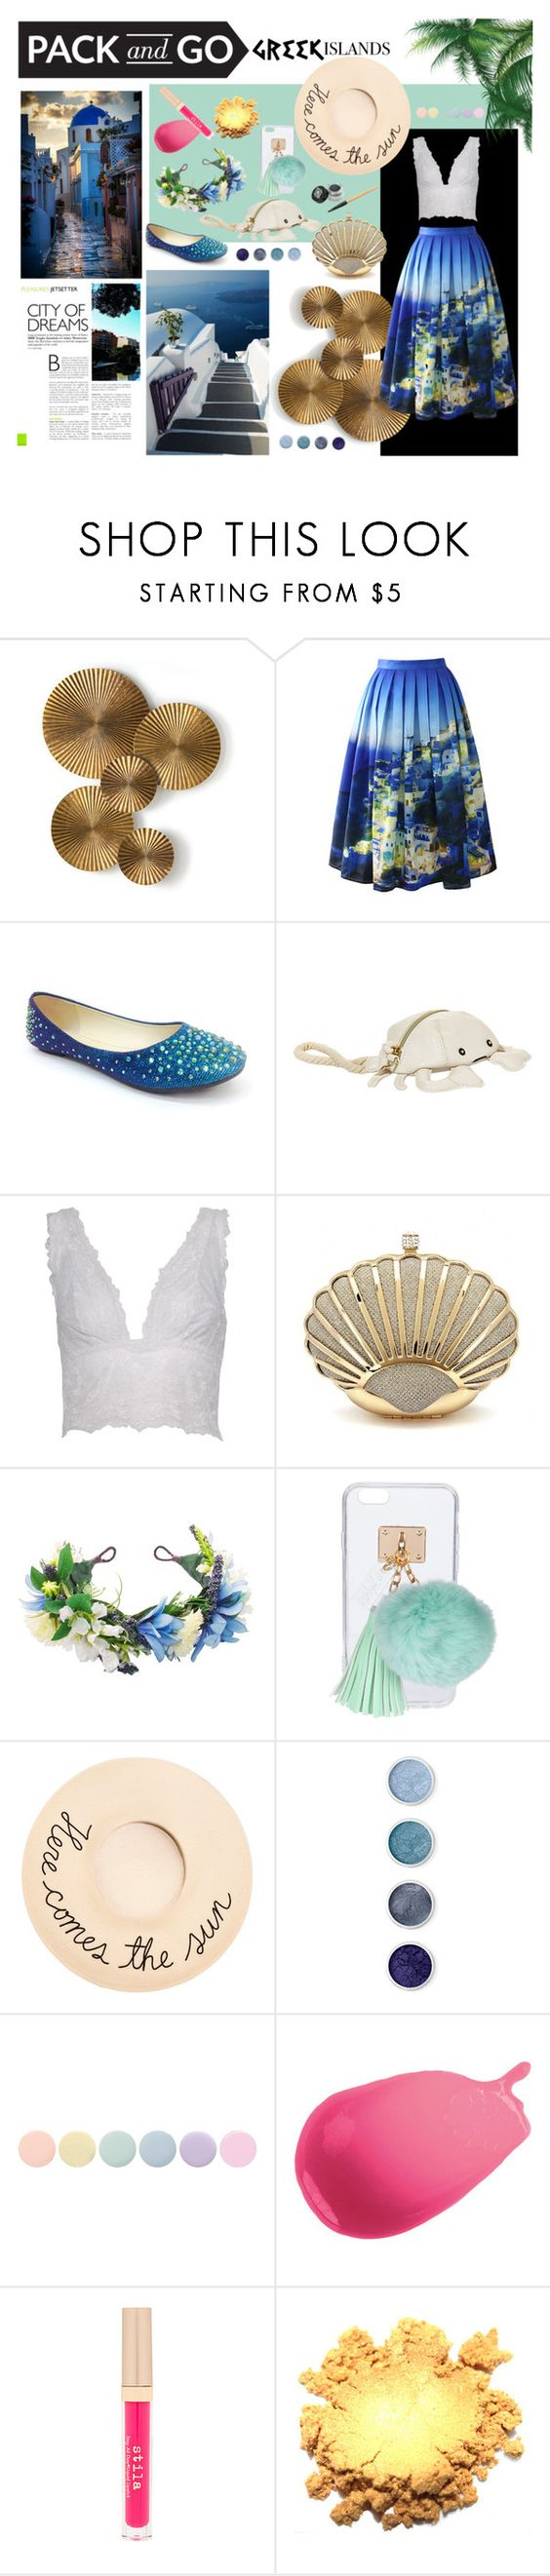 """Greek Isle of Mystery"" by mysterekitty on Polyvore featuring Arteriors, Chicwish, Bamboo, Betsey Johnson, Donna Karan, Ashlyn'd, Eugenia Kim, Terre Mère, Deborah Lippmann and Lancôme"